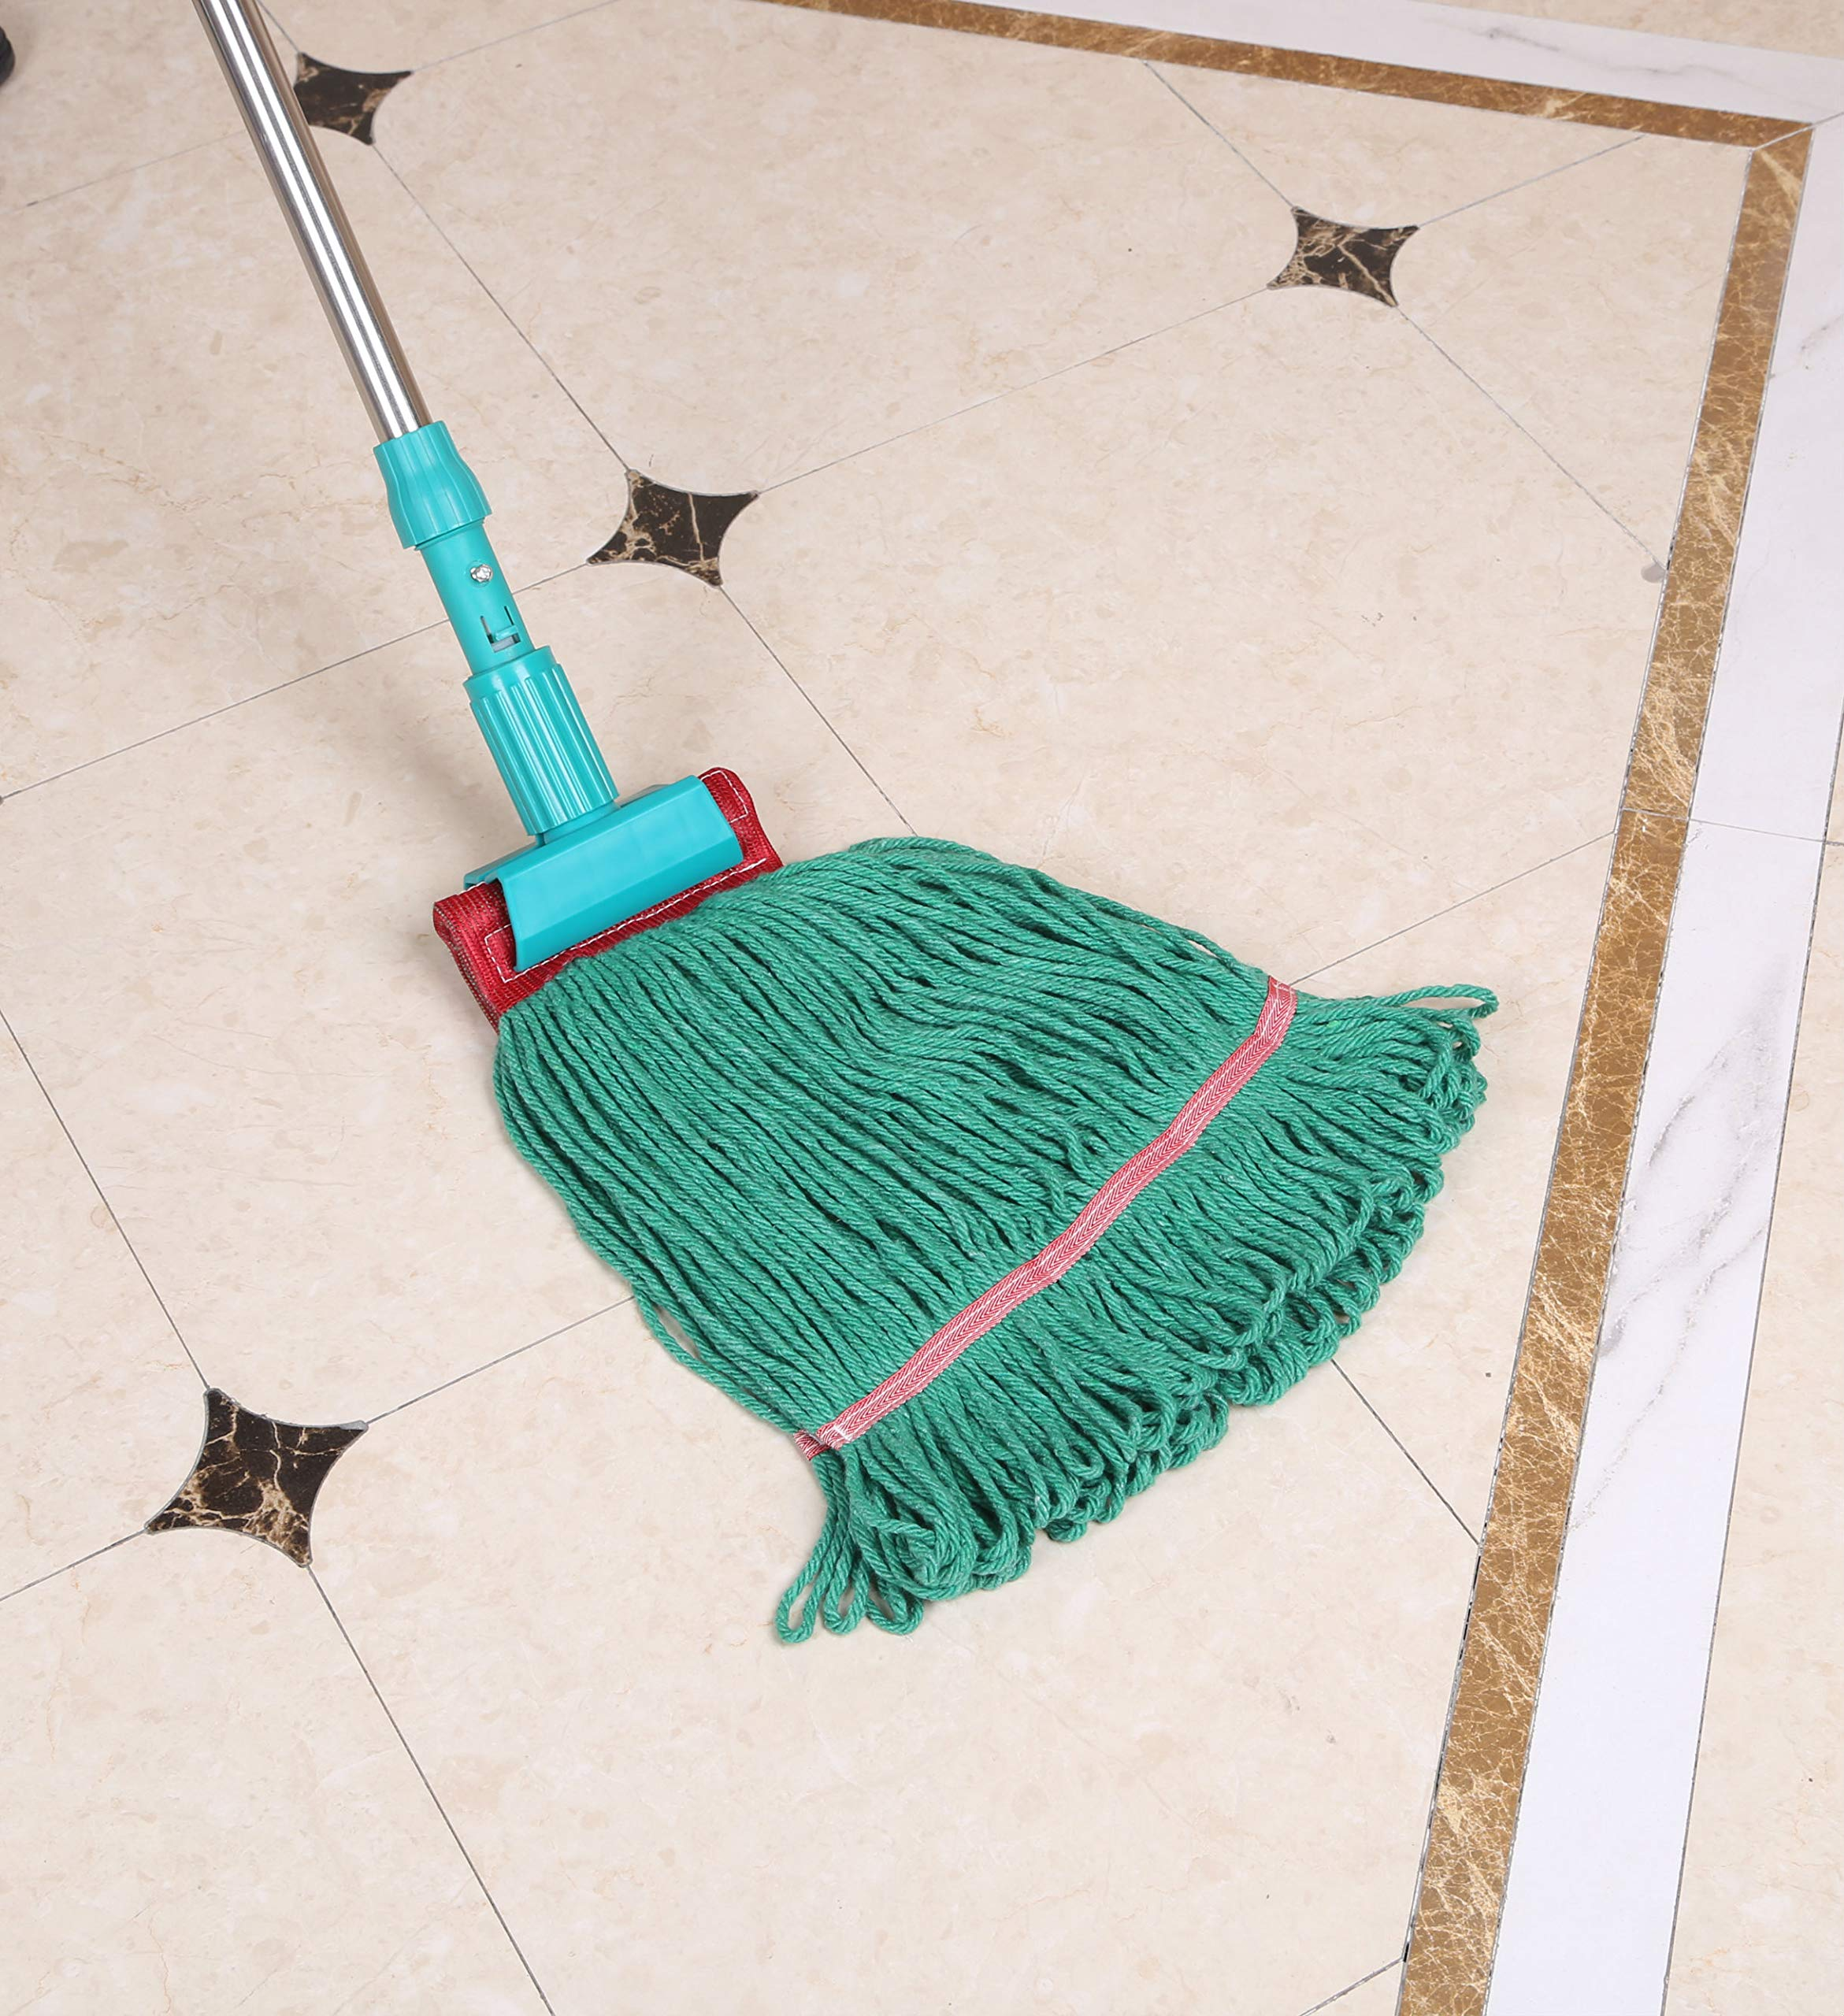 Loop-End Mop Heads Polyester Cotton 18-Inch Large, Green 4-Pack by QIPENG (Image #5)